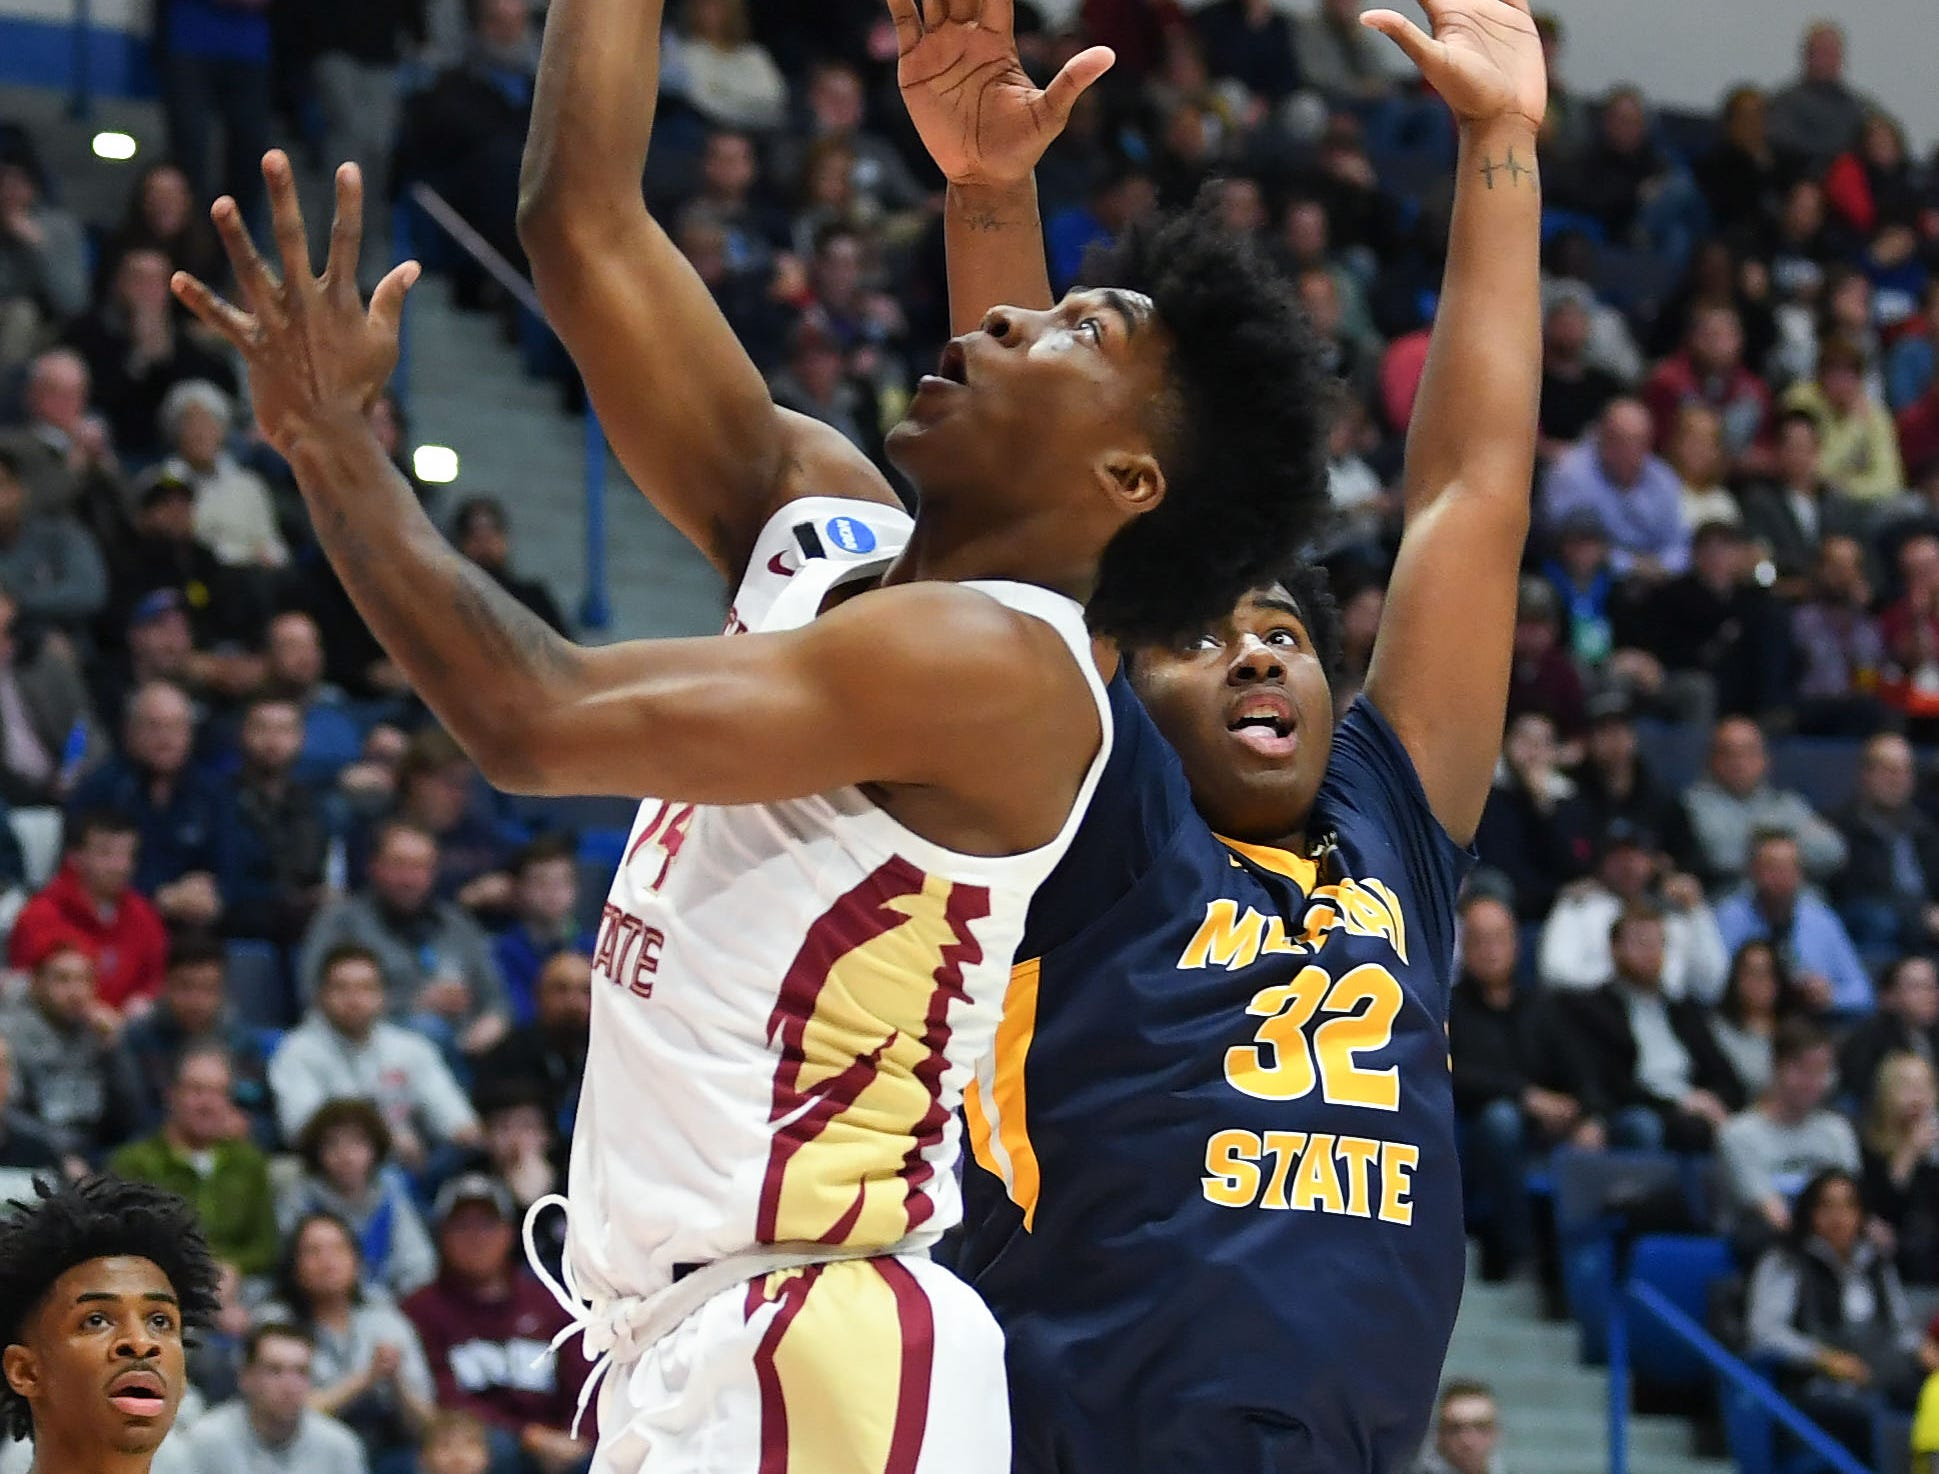 Mar 23, 2019; Hartford, CT, USA; Florida State Seminoles guard Terance Mann (14) attempts a layup in front of Murray State Racers forward Darnell Cowart (32) during the first half of a game in the second round of the 2019 NCAA Tournament at XL Center. Mandatory Credit: Robert Deutsch-USA TODAY Sports